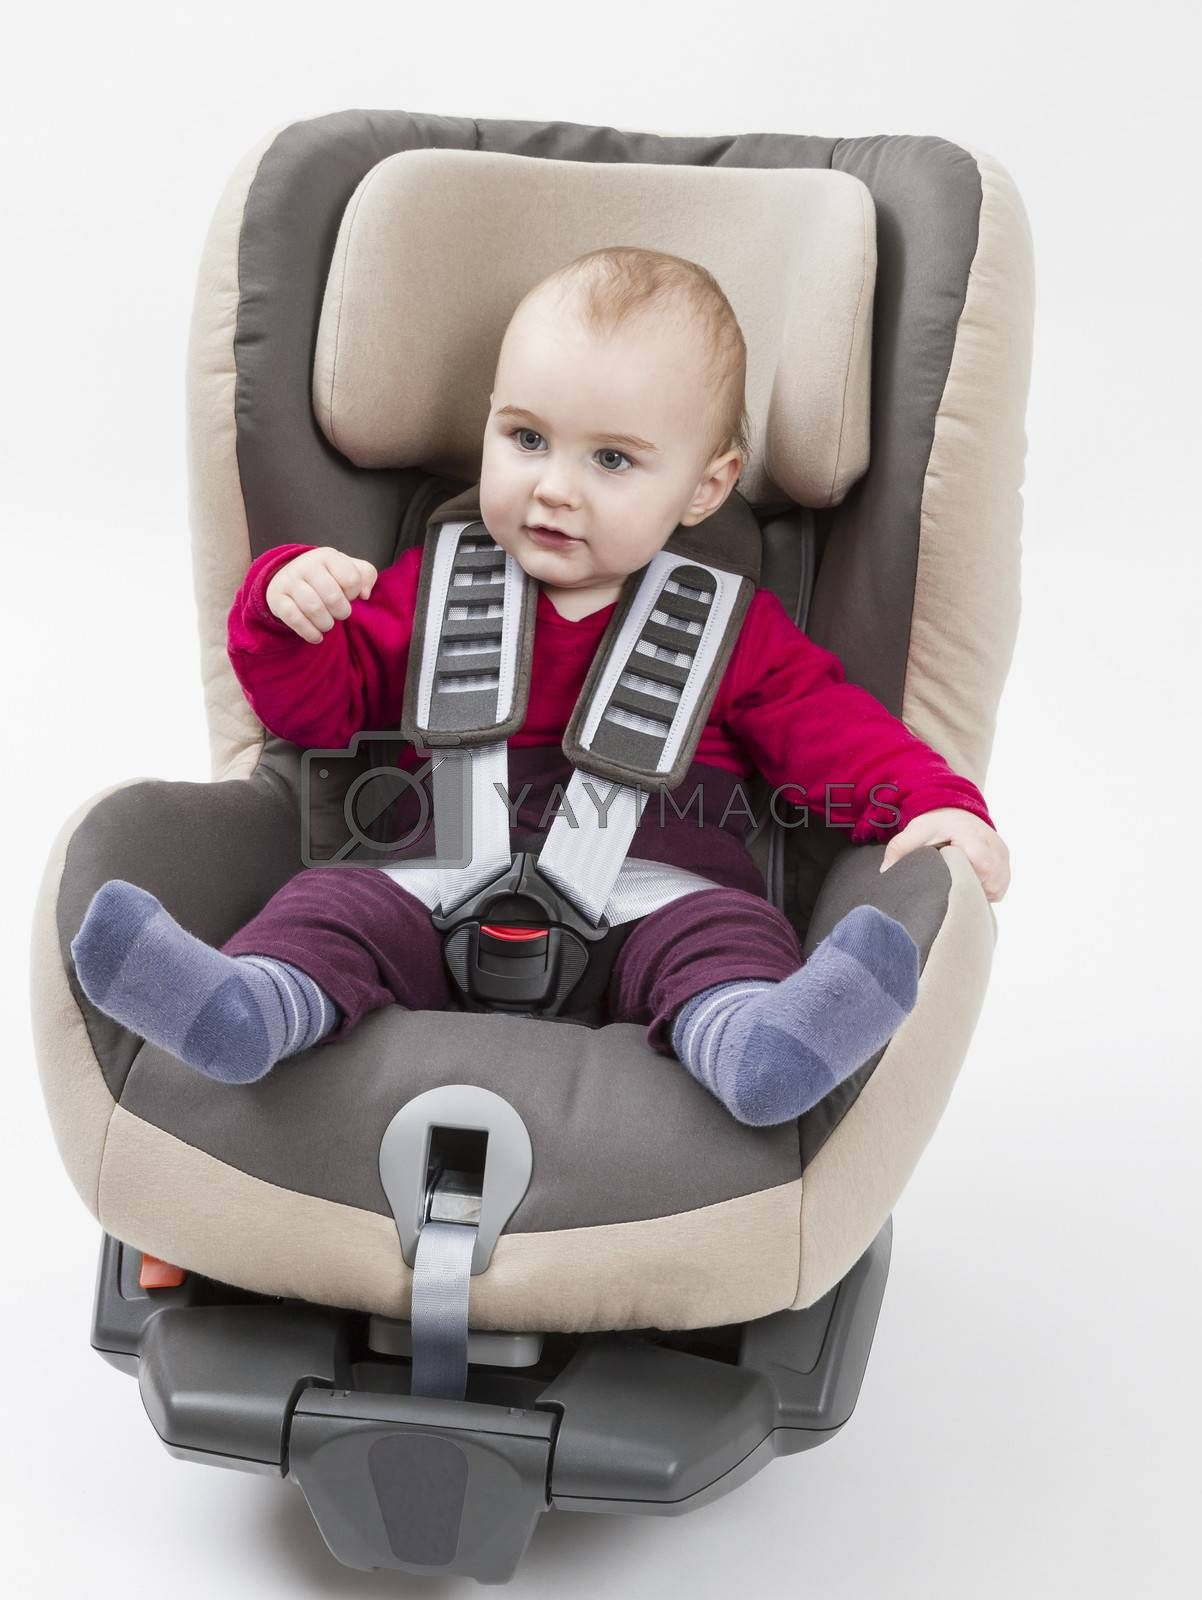 booster seat with child for a car in light background. studio shot.